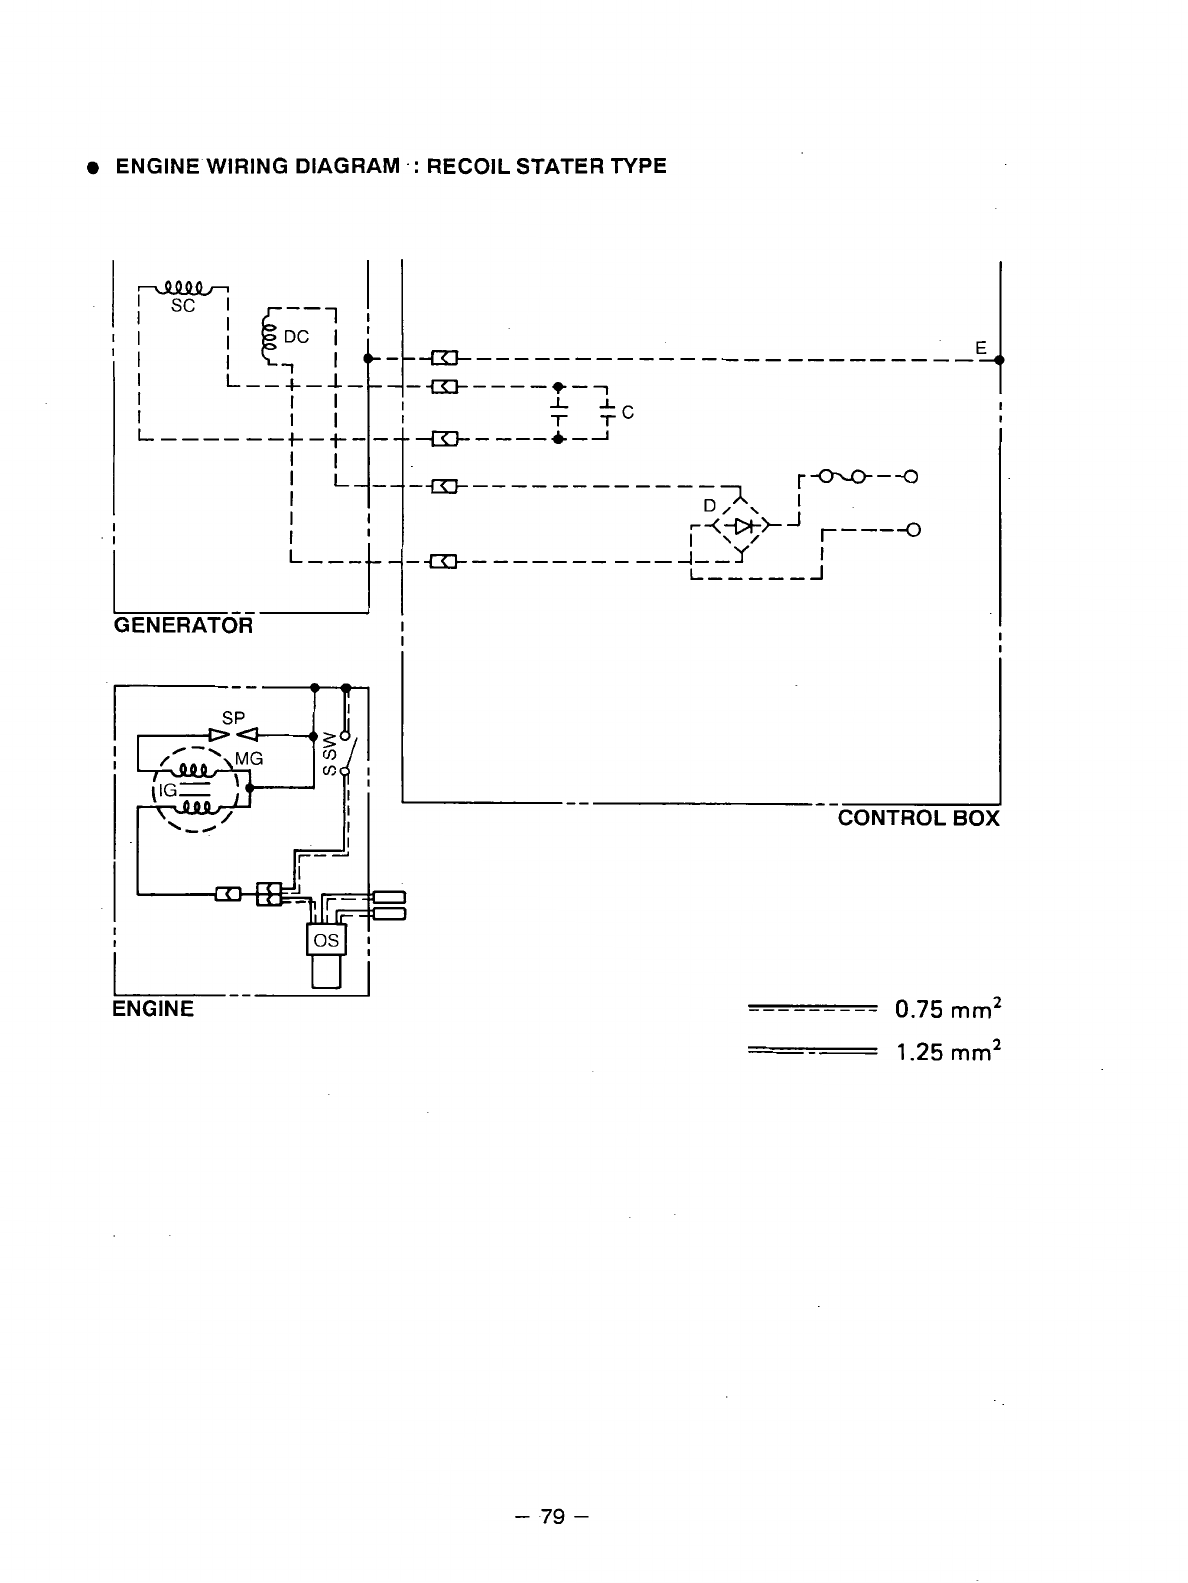 page 82 of subaru robin power products portable generator rgx3510 user guide manualsonline